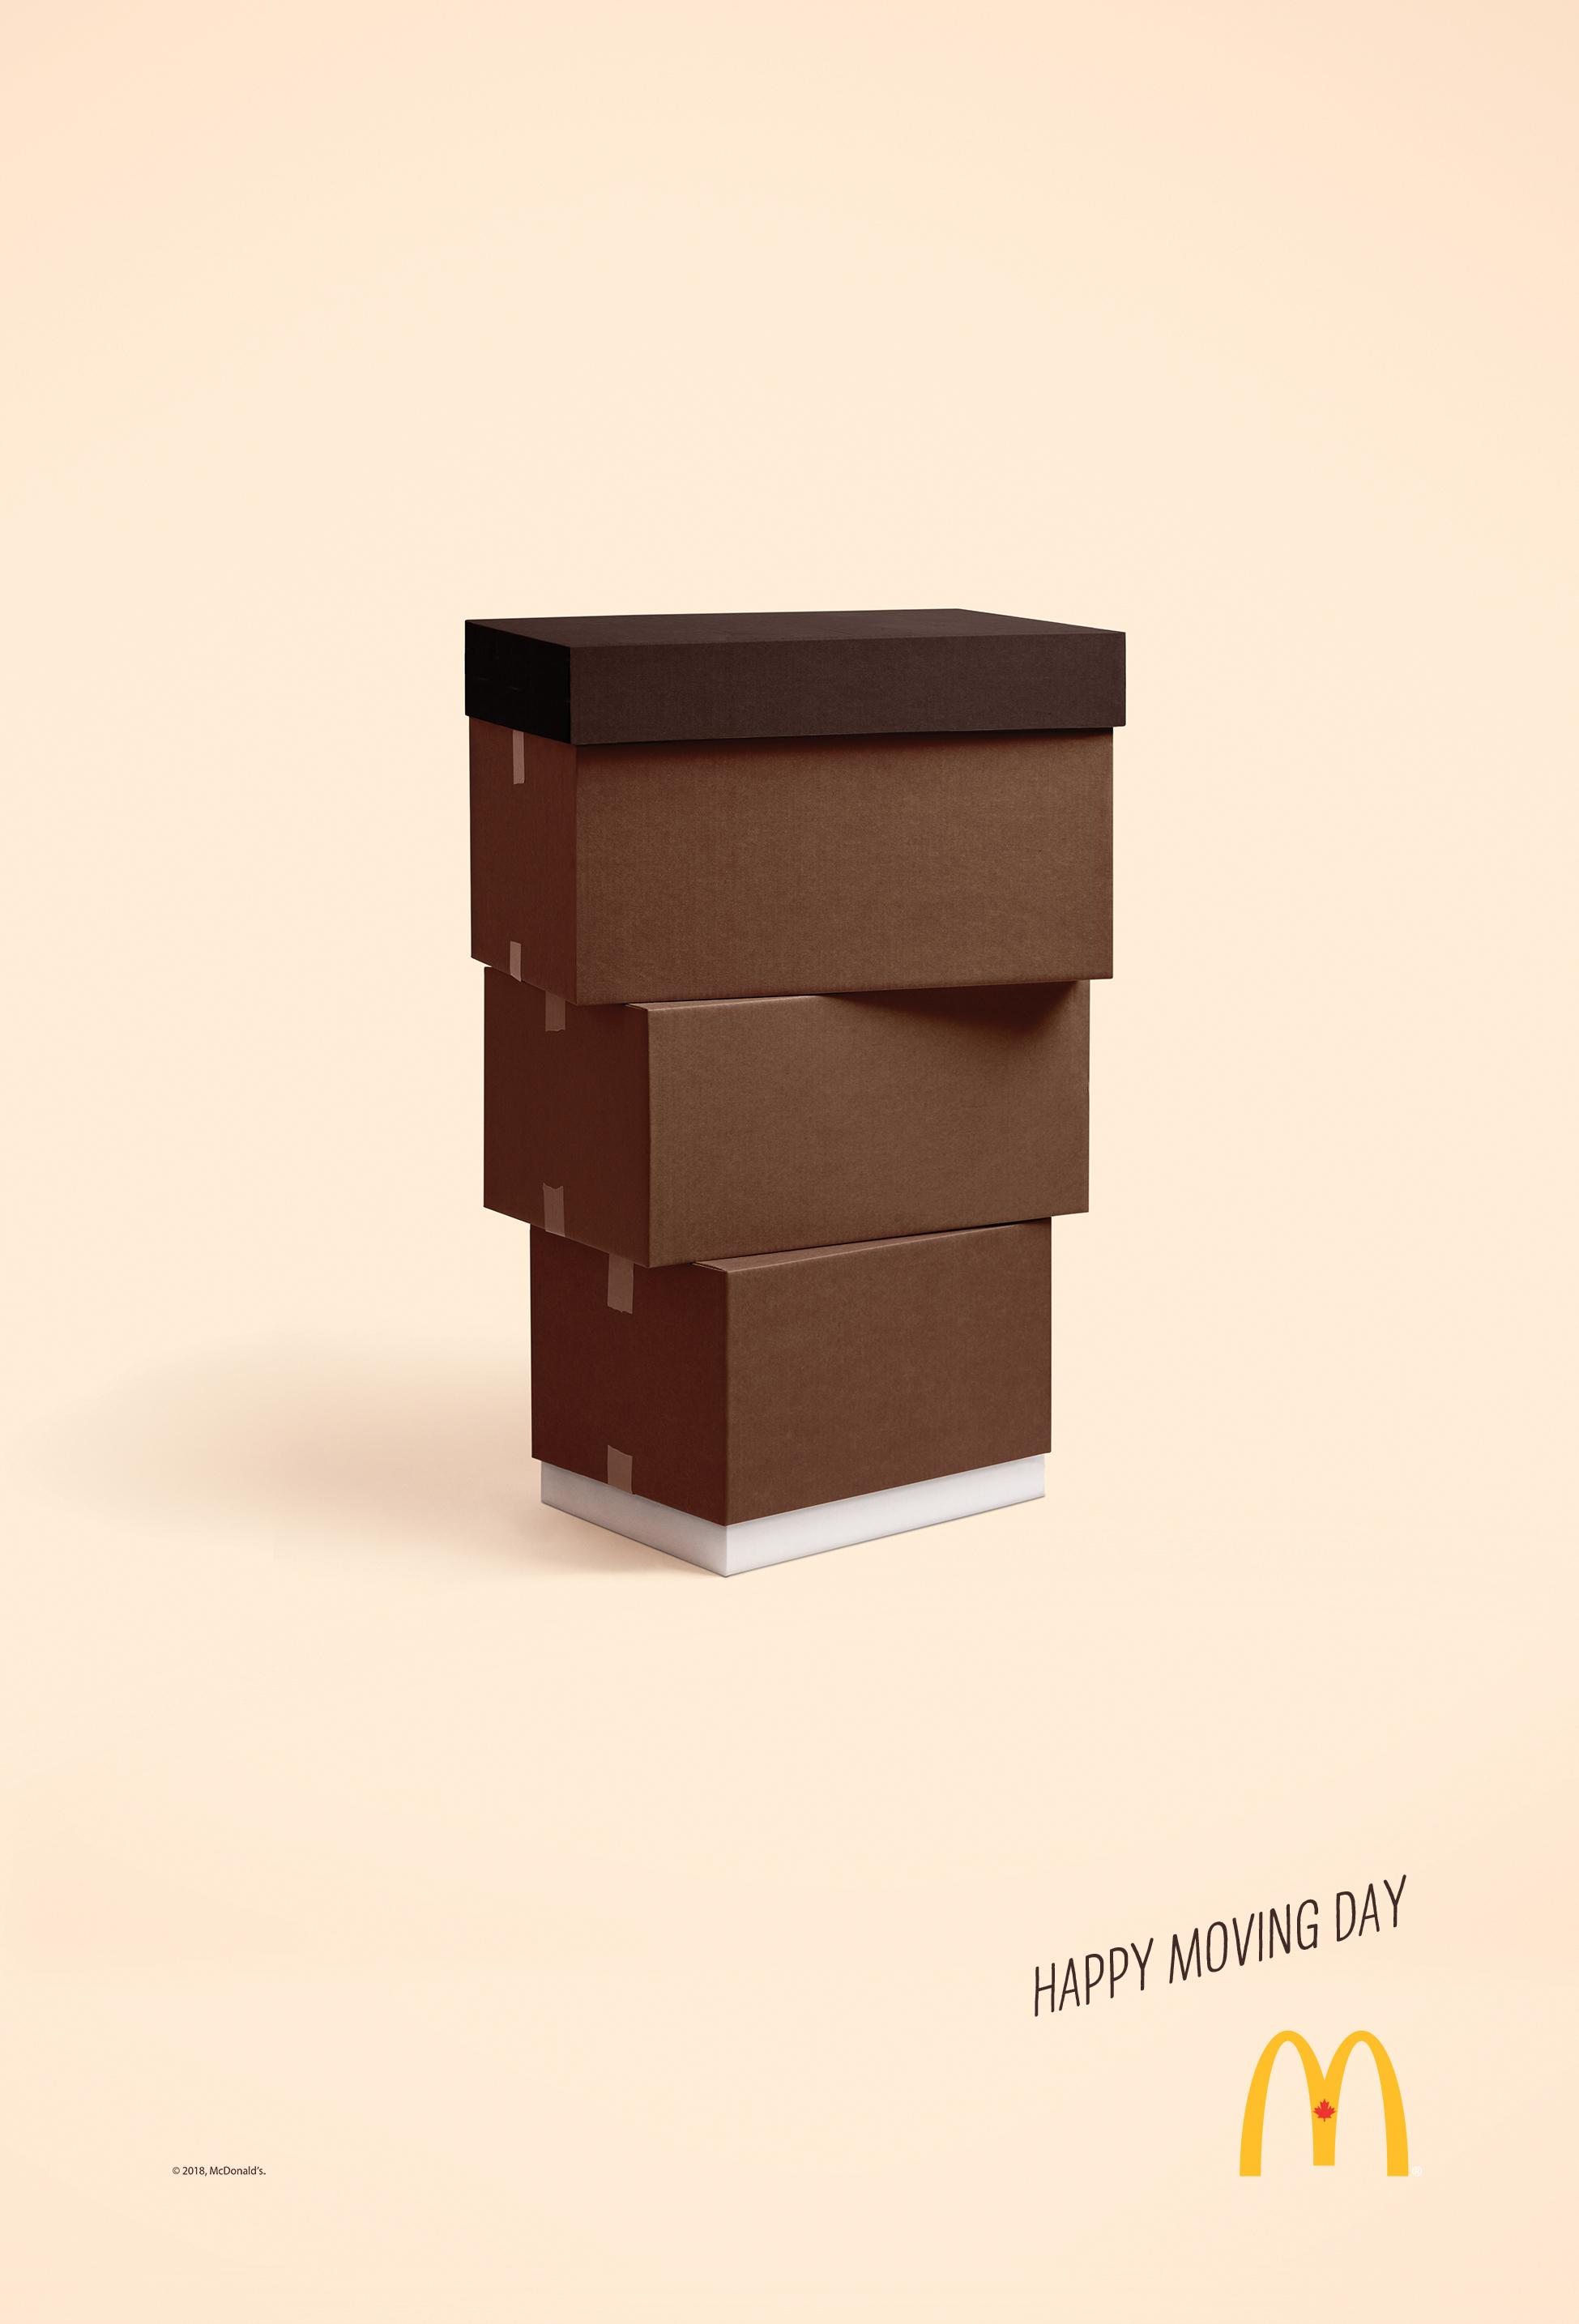 McDonald's Print Ad - Happy Moving Day - McCafe